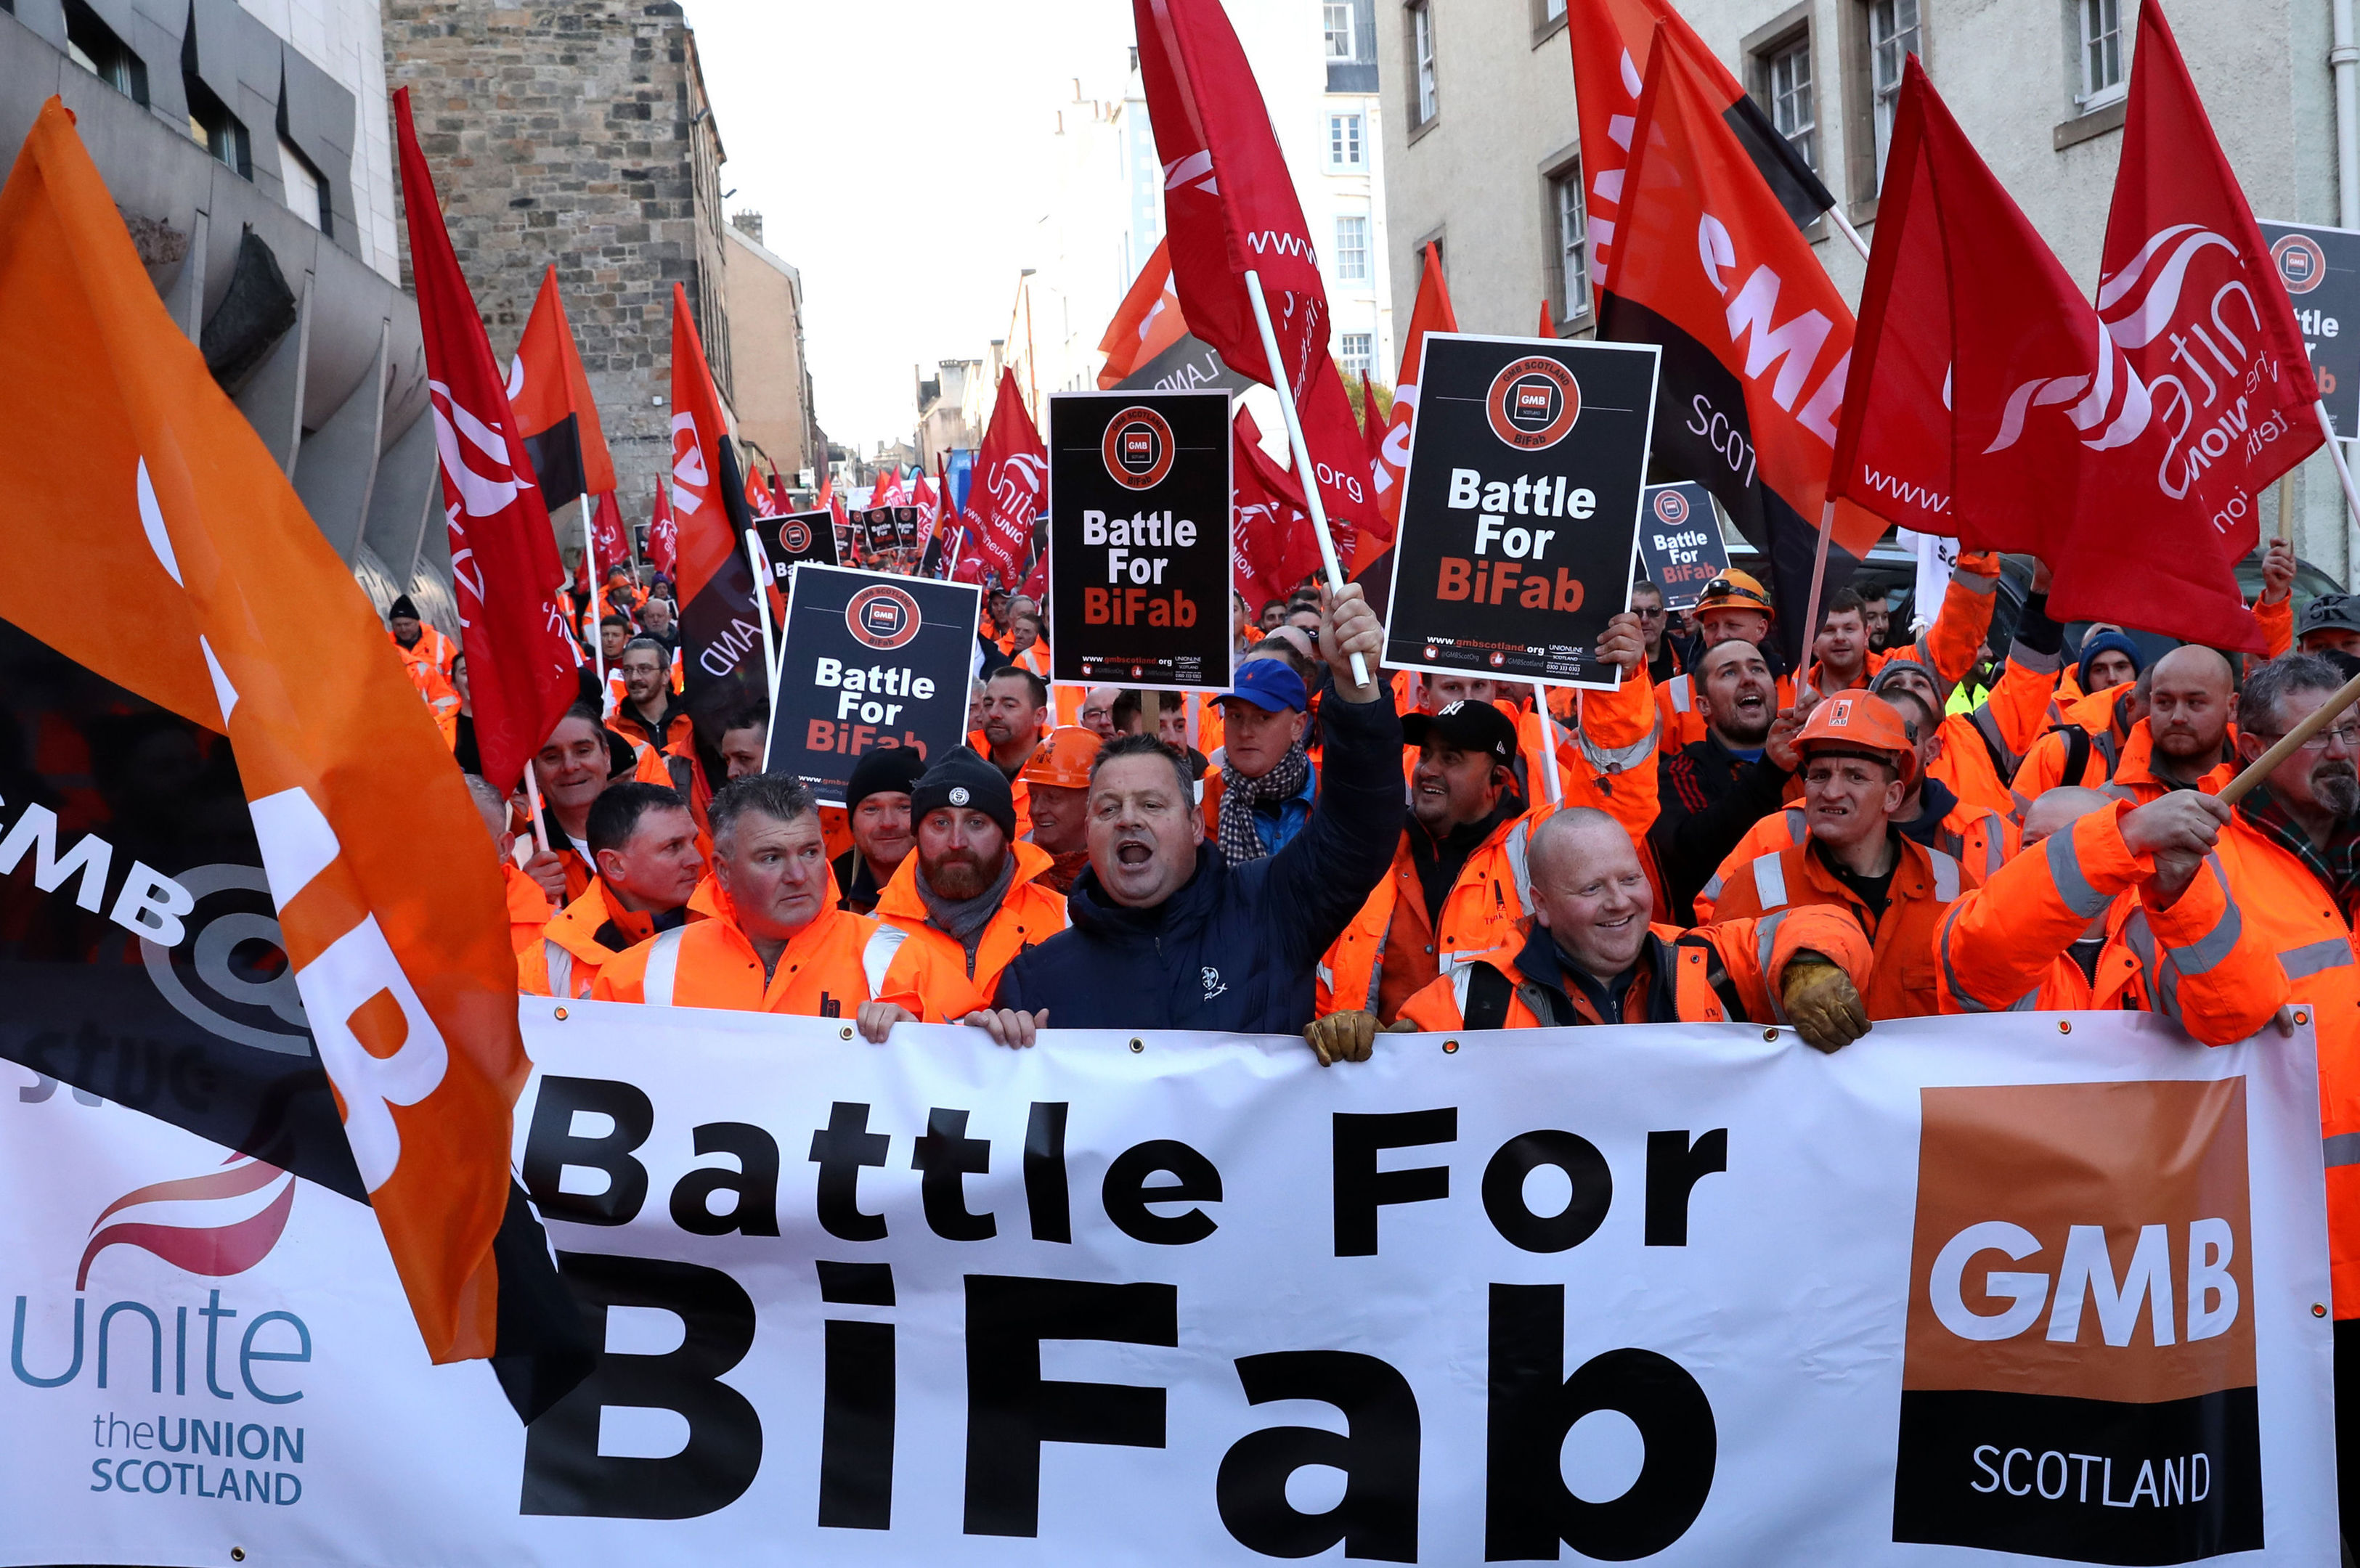 Workers from crisis-hit fabrication firm BiFab march through Edinburgh to the Scottish Parliament in a bid to raise awareness of their plight. PRESS ASSOCIATION Photo. Picture date: Thursday November 16, 2017. See PA story INDUSTRY BiFab. Photo credit should read: Andrew Milligan/PA Wire